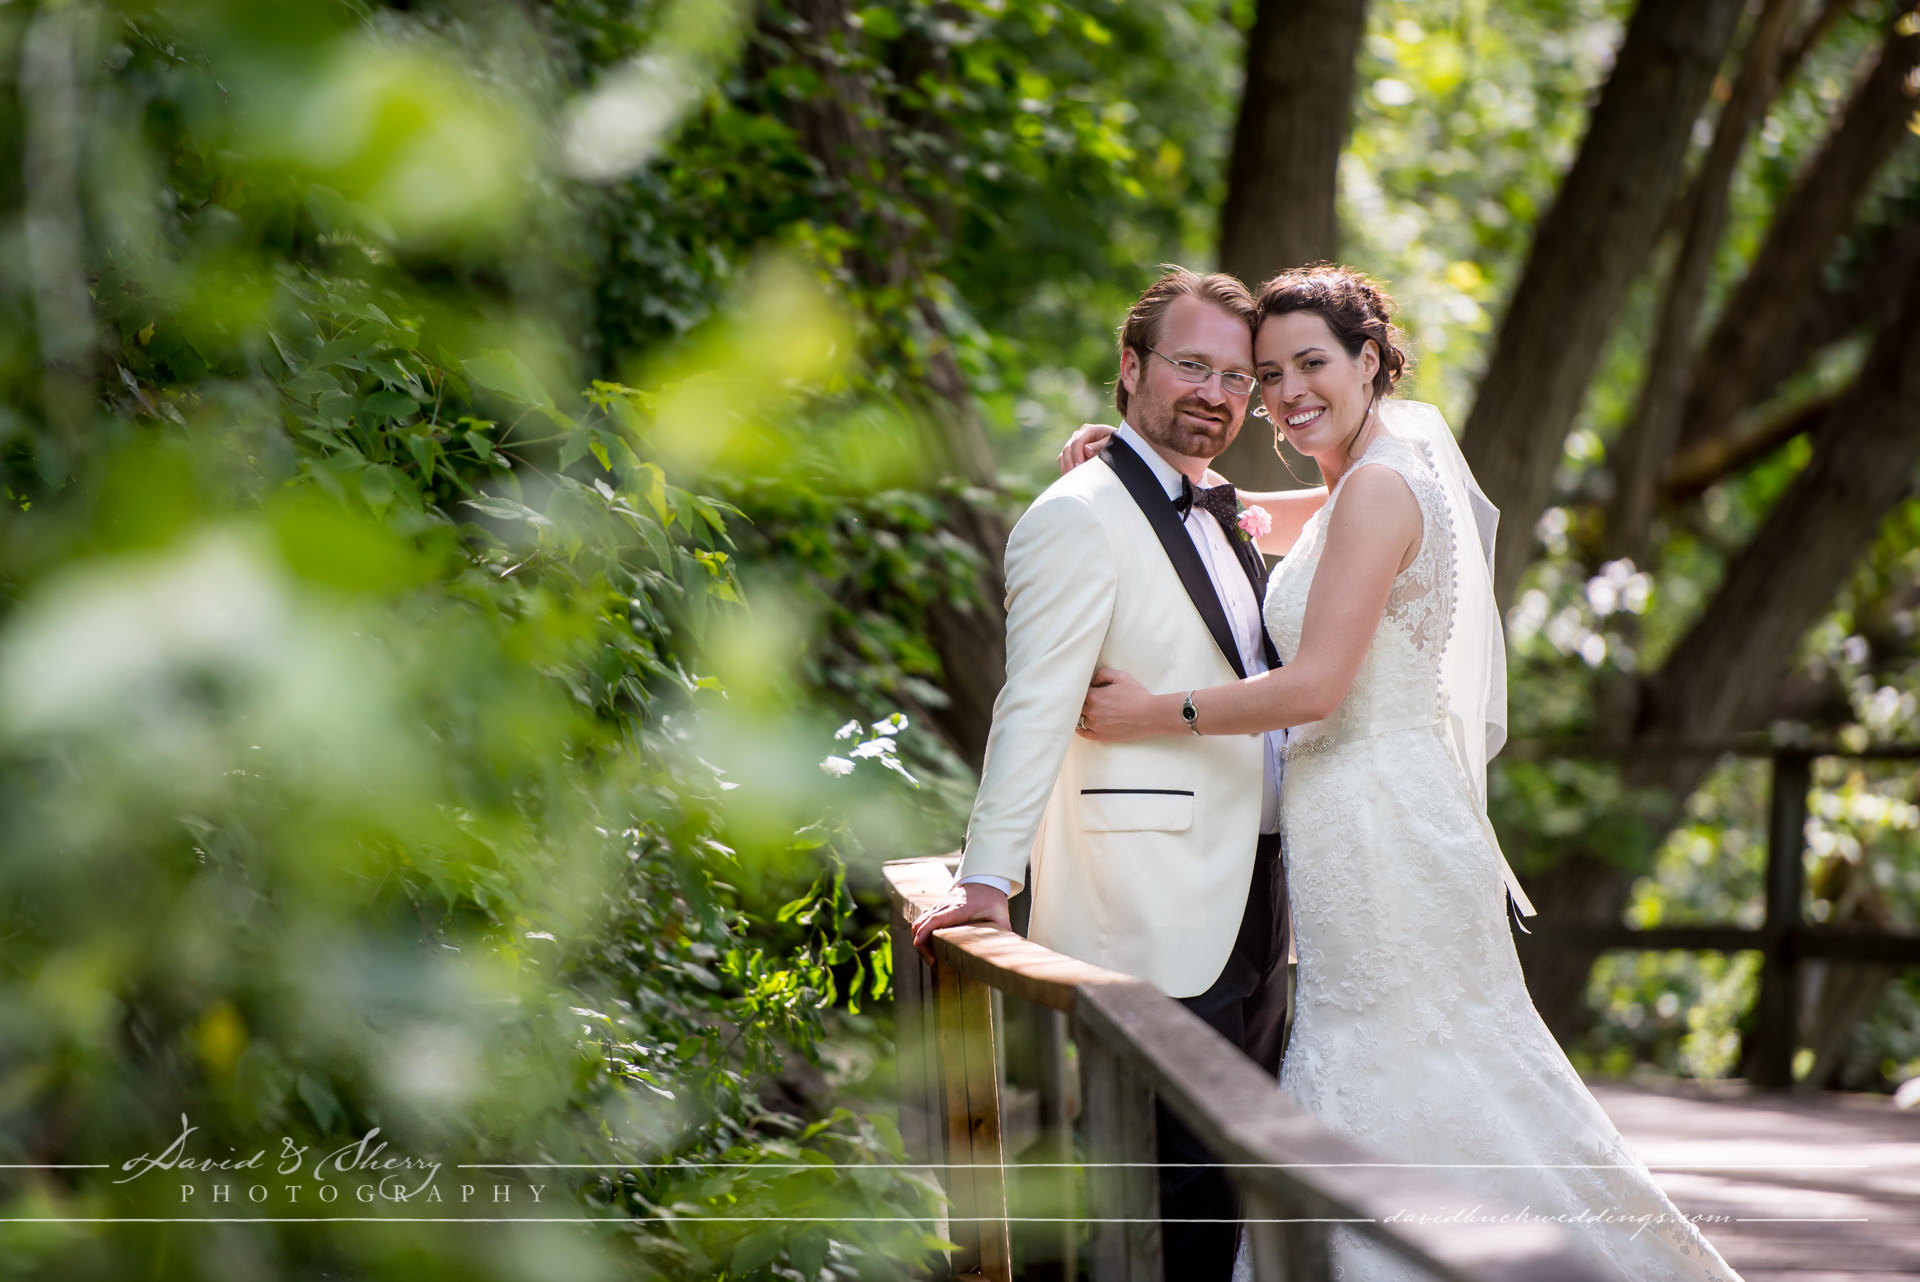 Craigleith_Ski_Club_Wedding_001